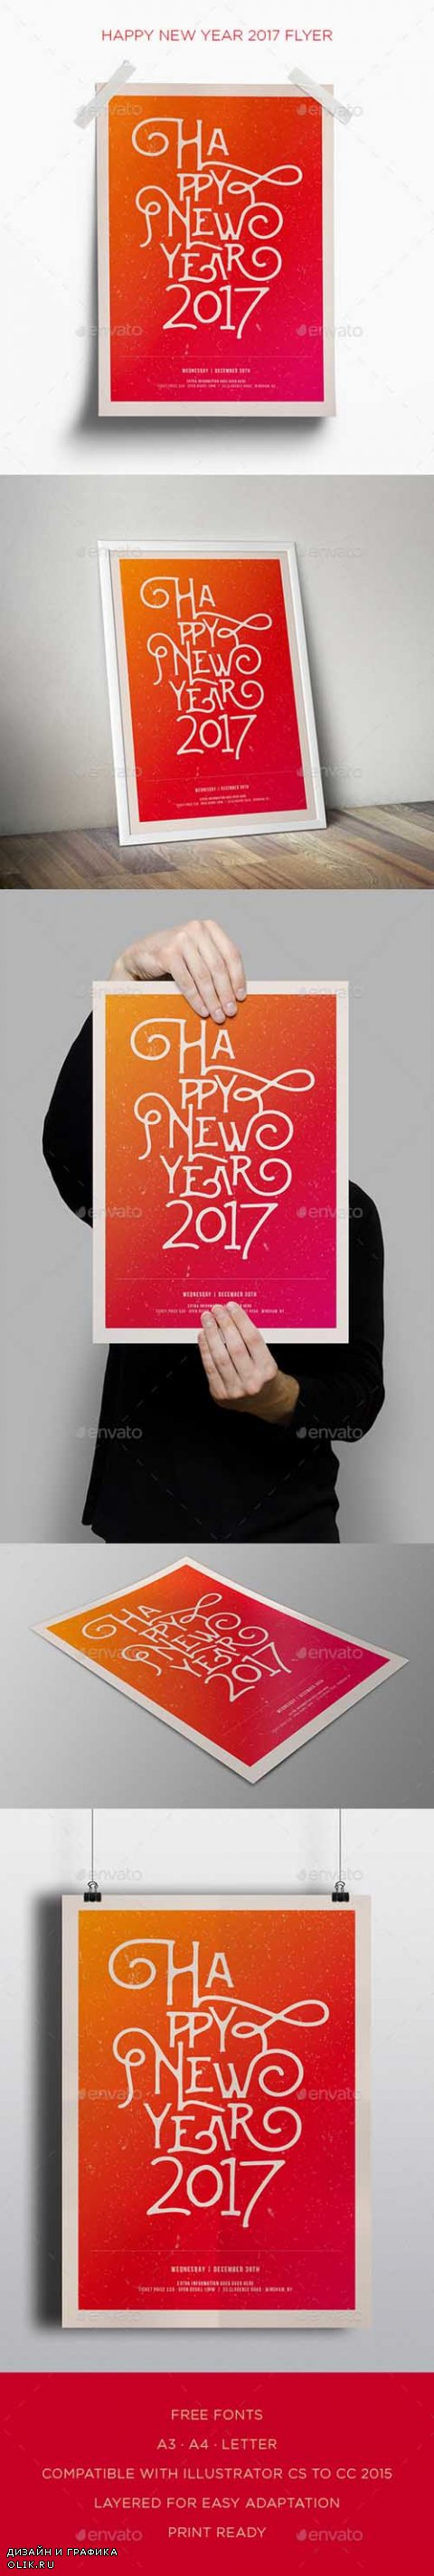 Happy New Year 2017 Flyer 18255867